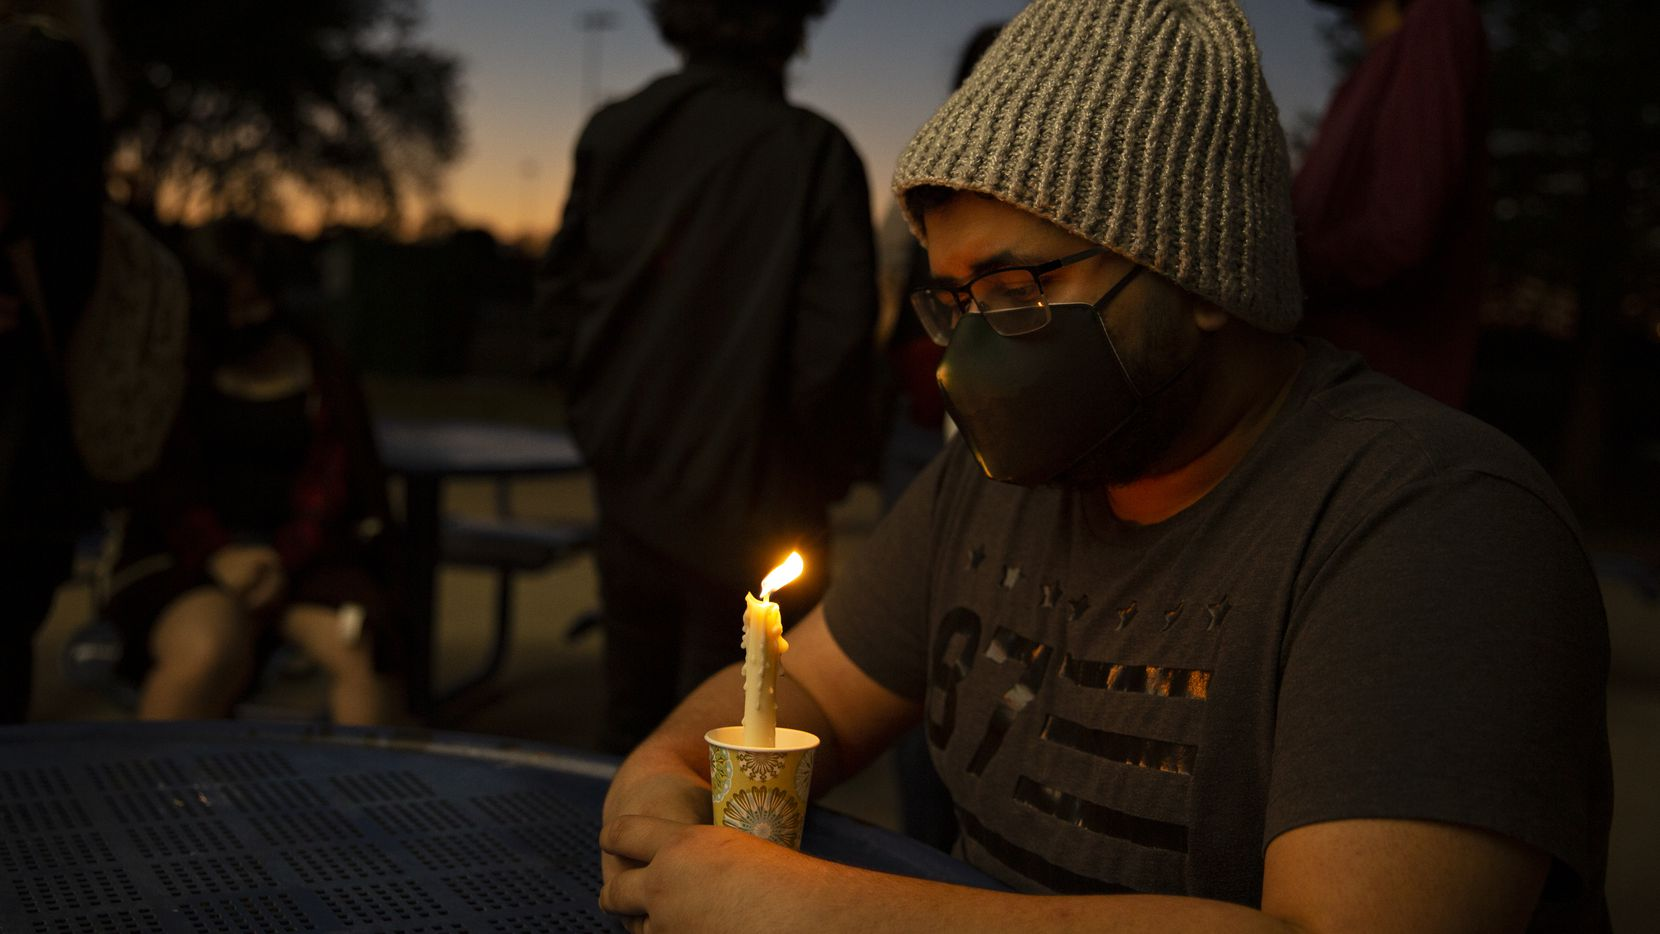 A candlelight vigil for an Allen family of six who died in a murder-suicide tragedy attracted many young people to  Celebration Park in the Collin County city April 7.